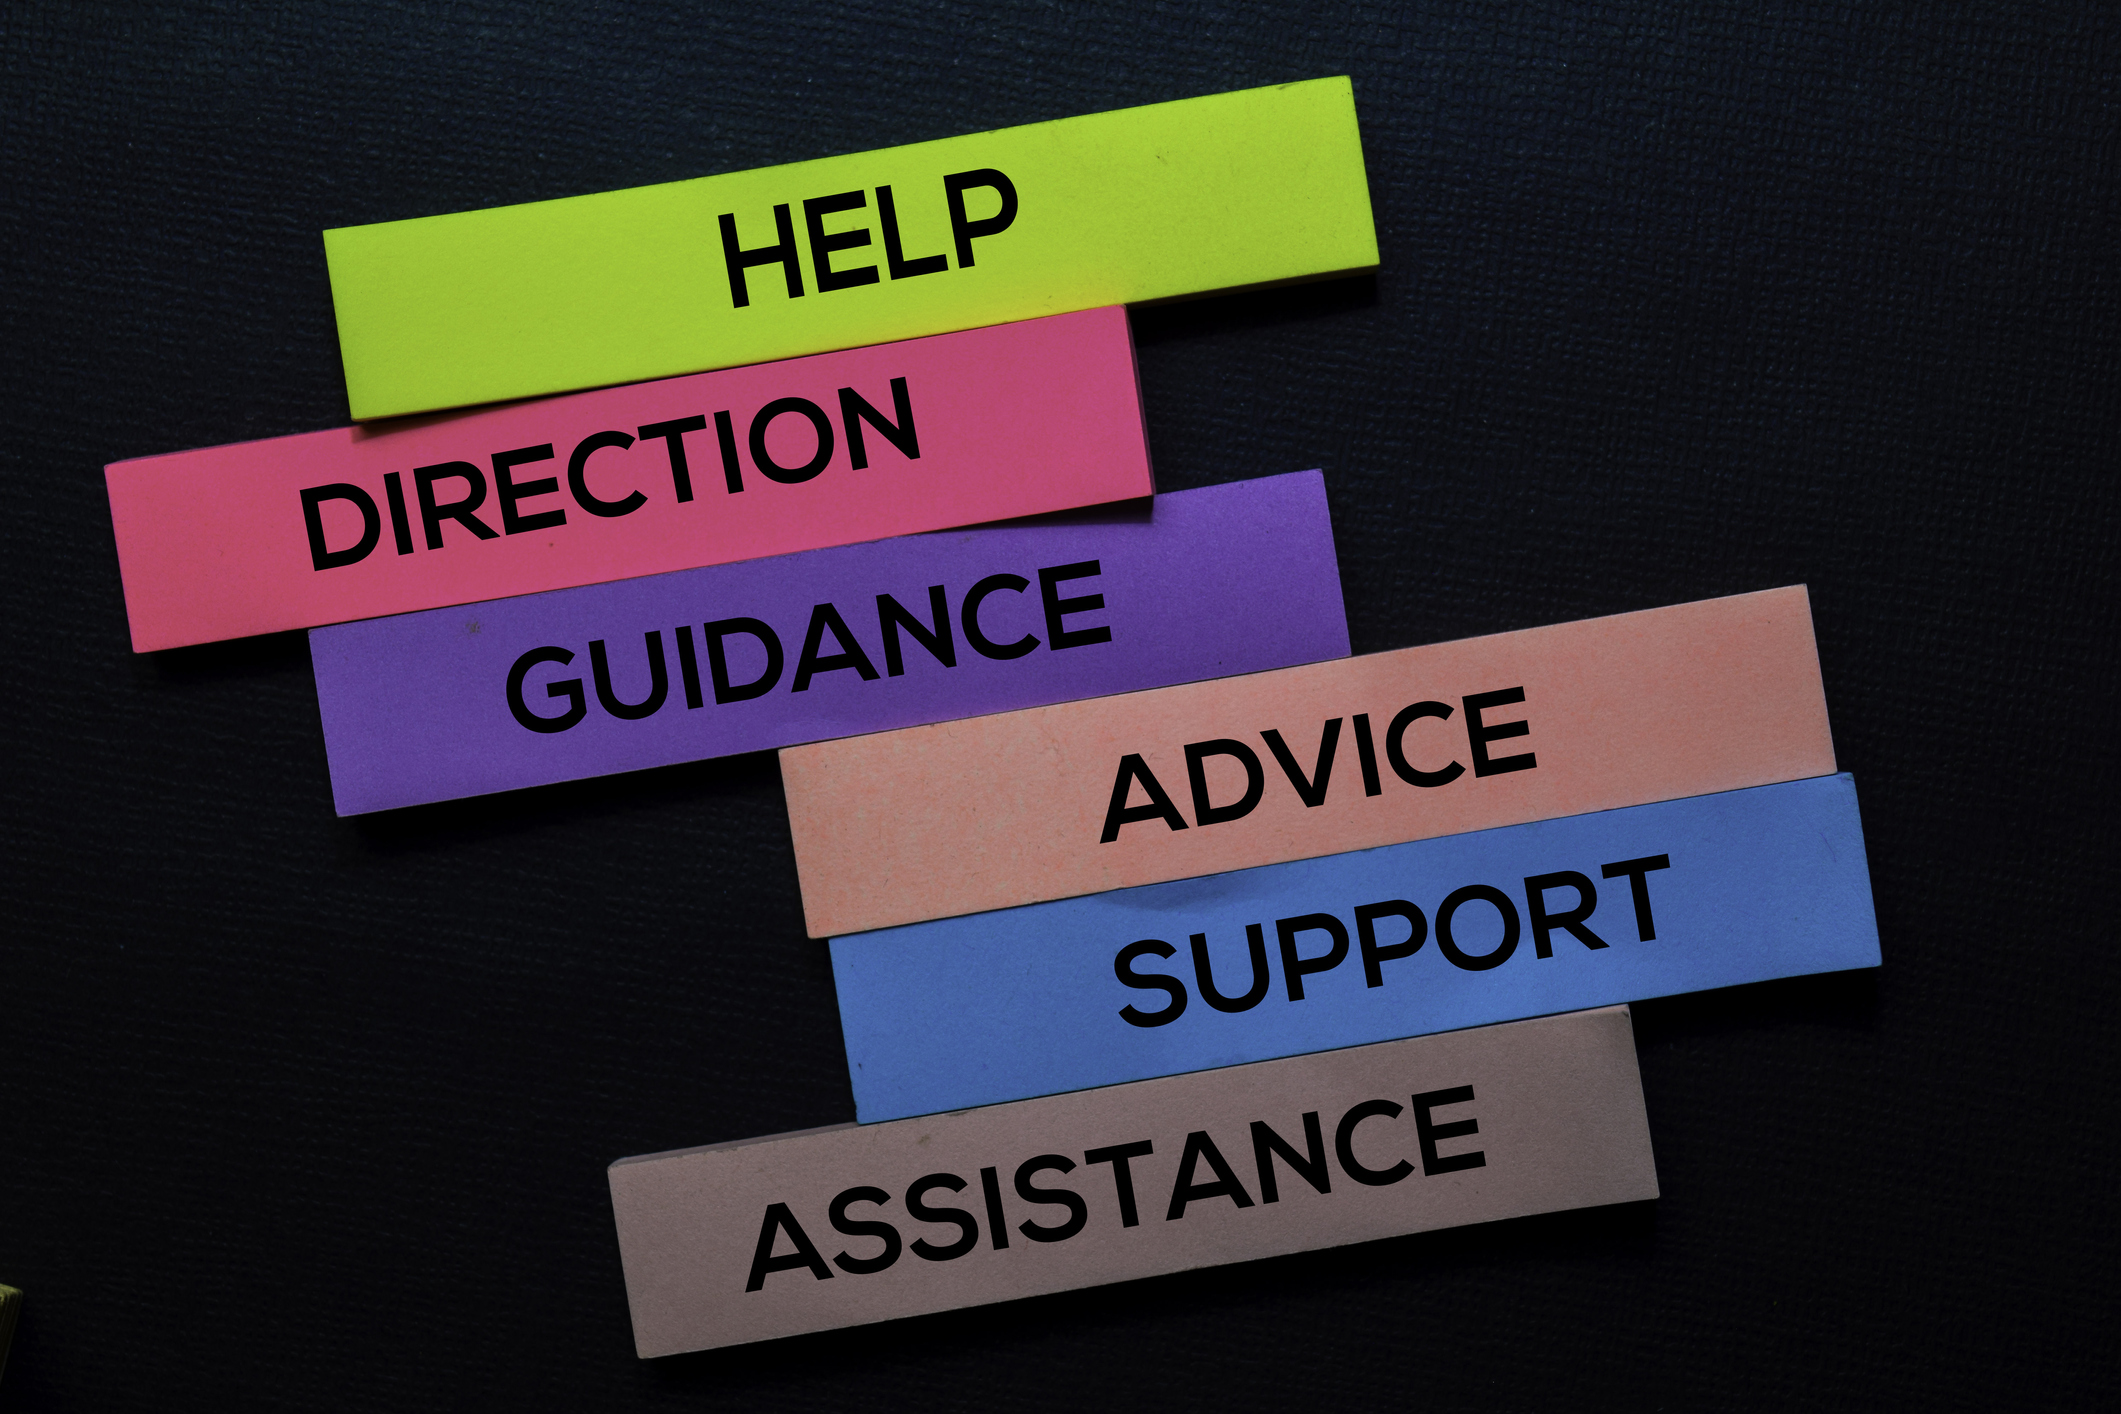 Help and guidance post it notes